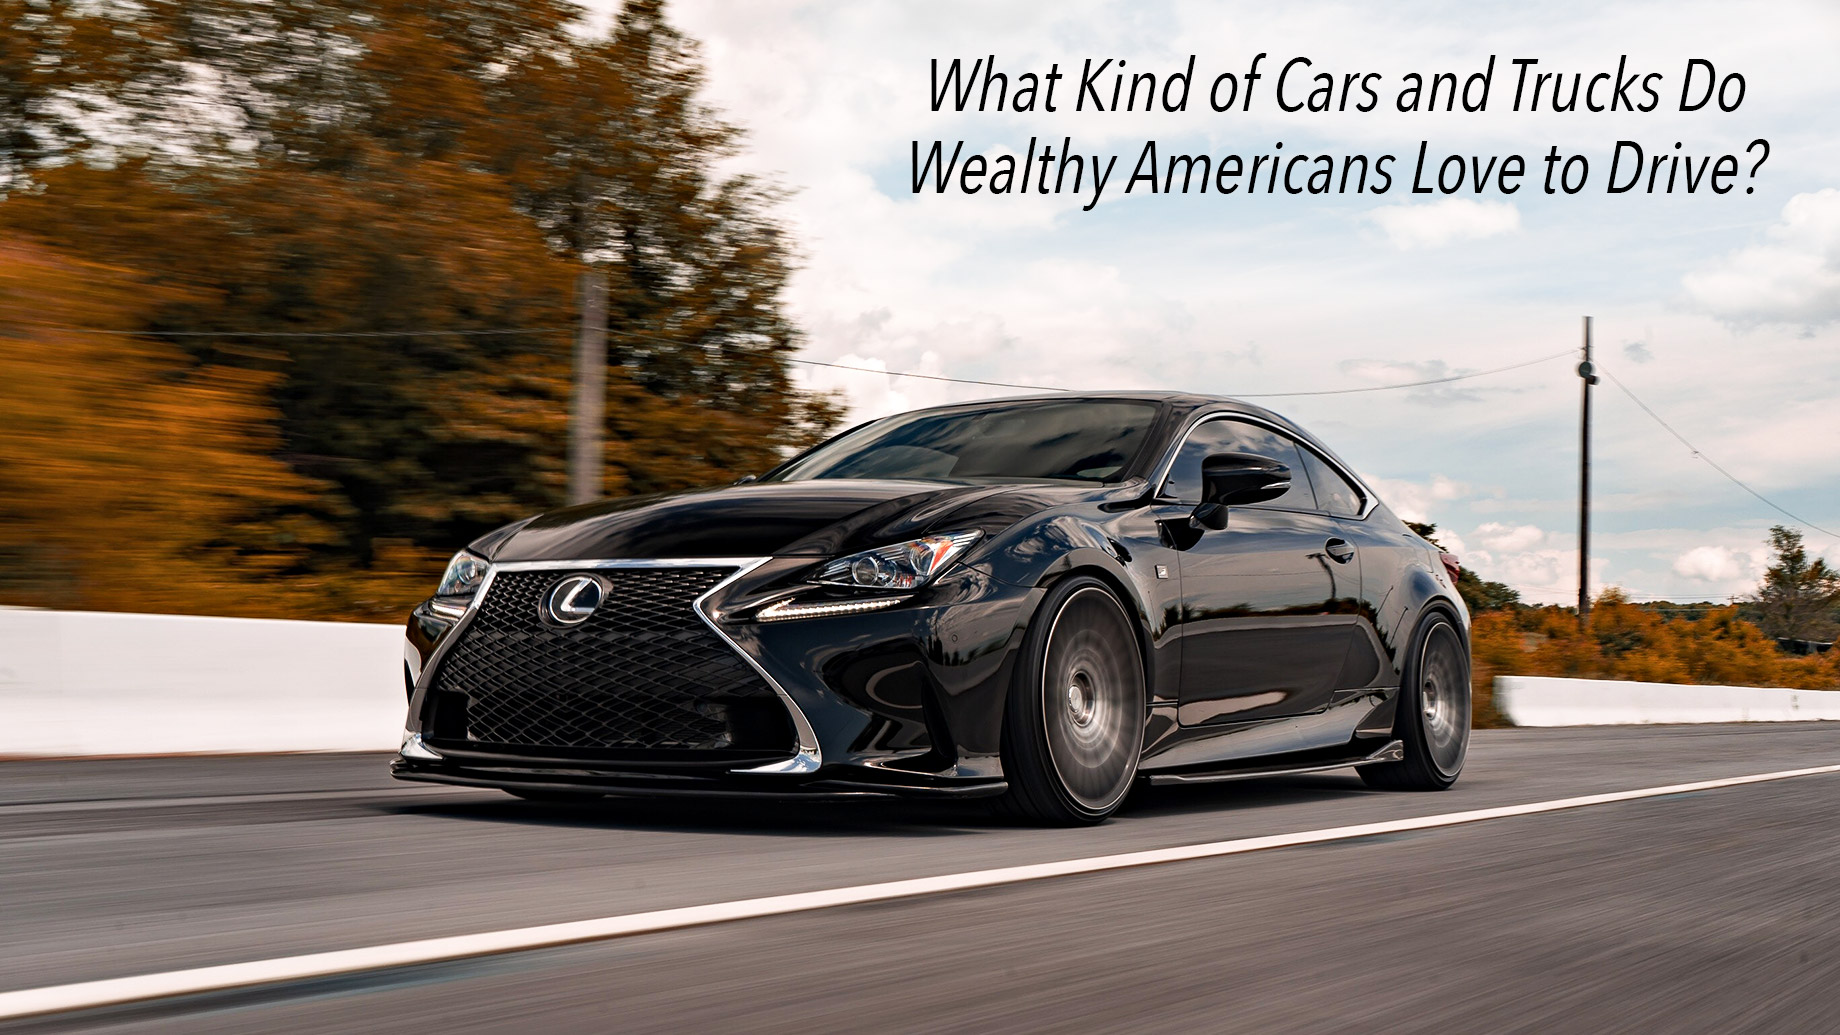 What Kind of Cars and Trucks Do Wealthy Americans Love to Drive?